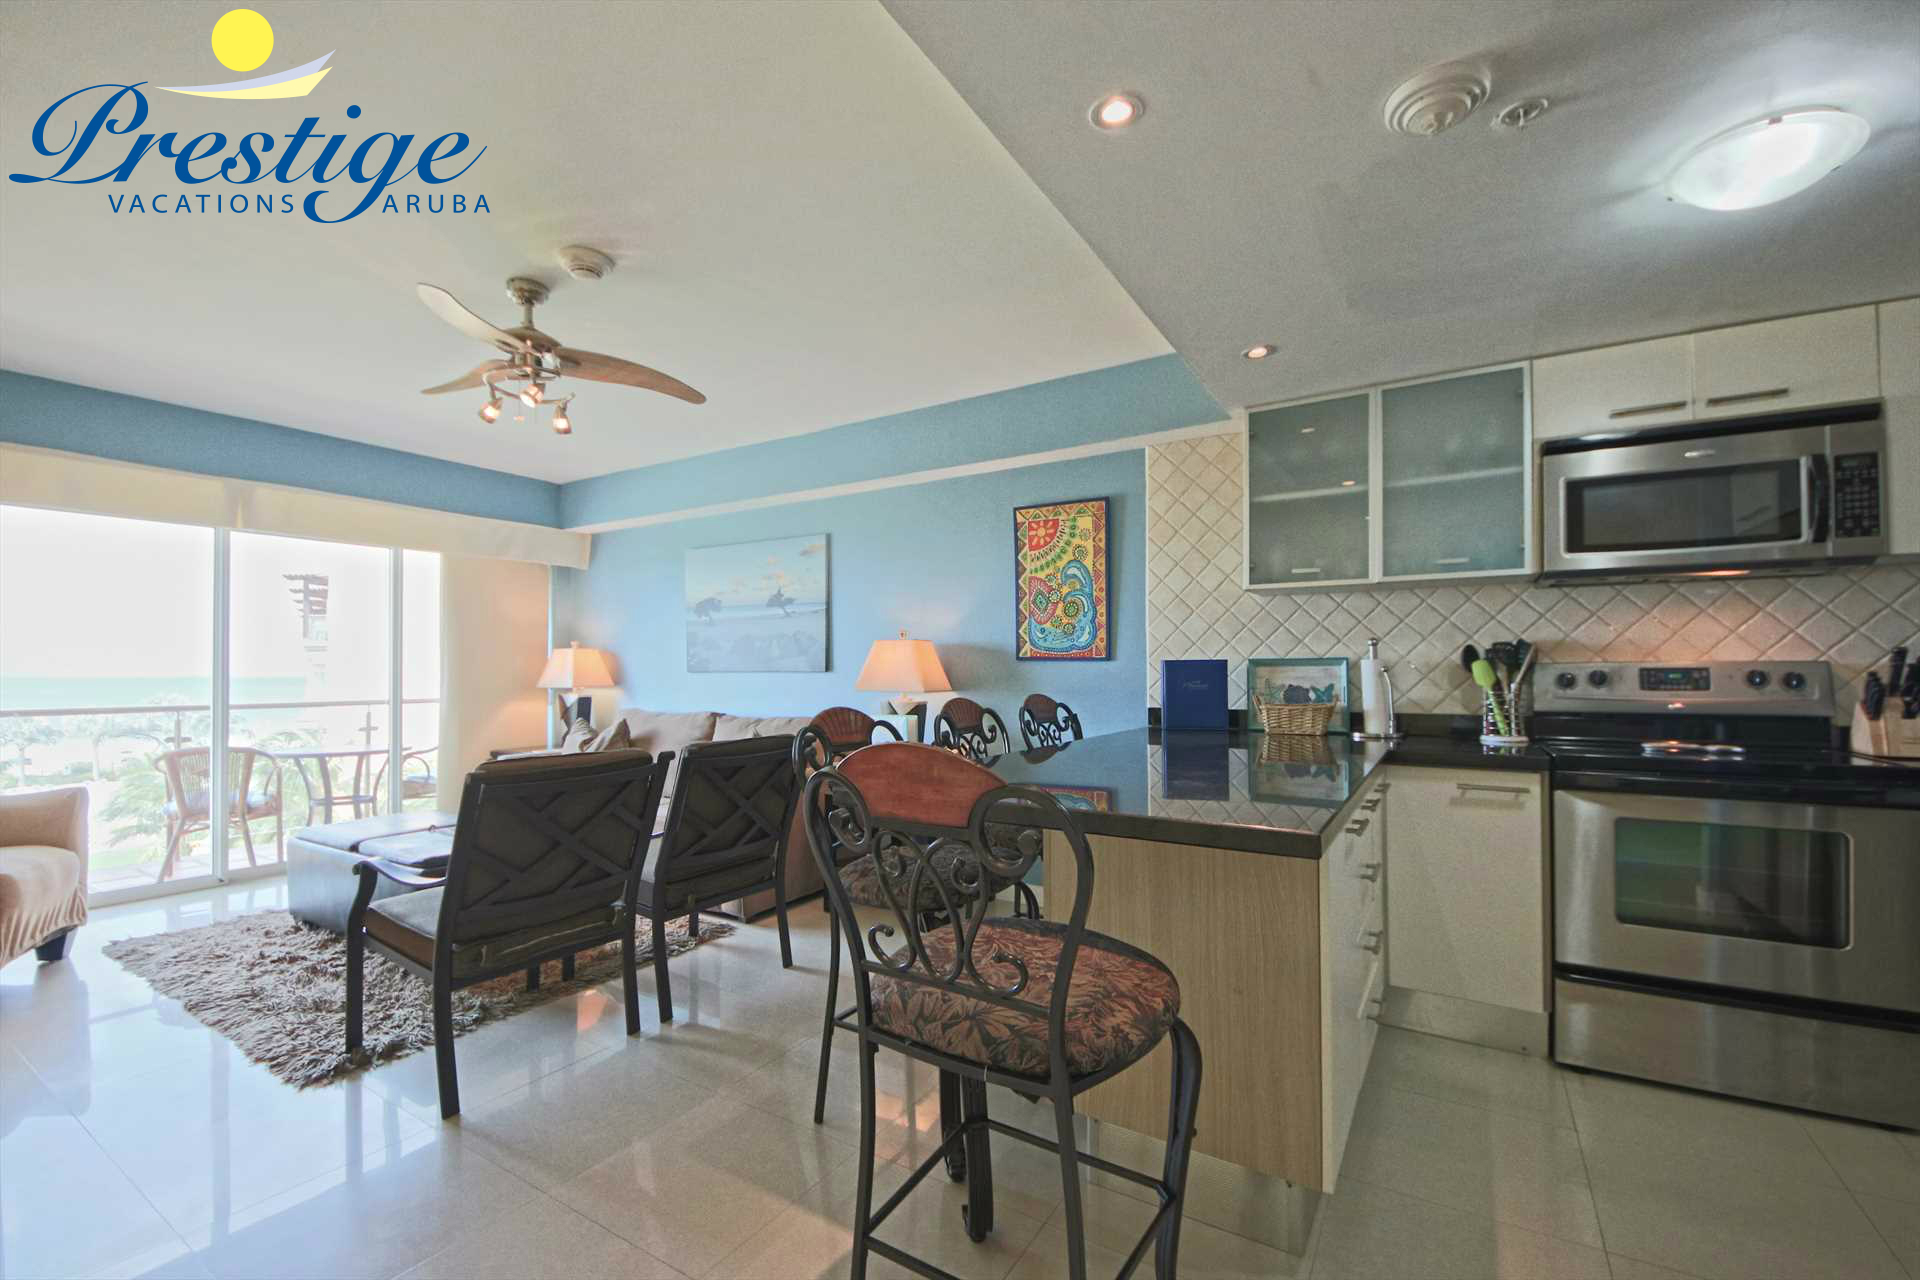 Your spacious living area with open kitchen